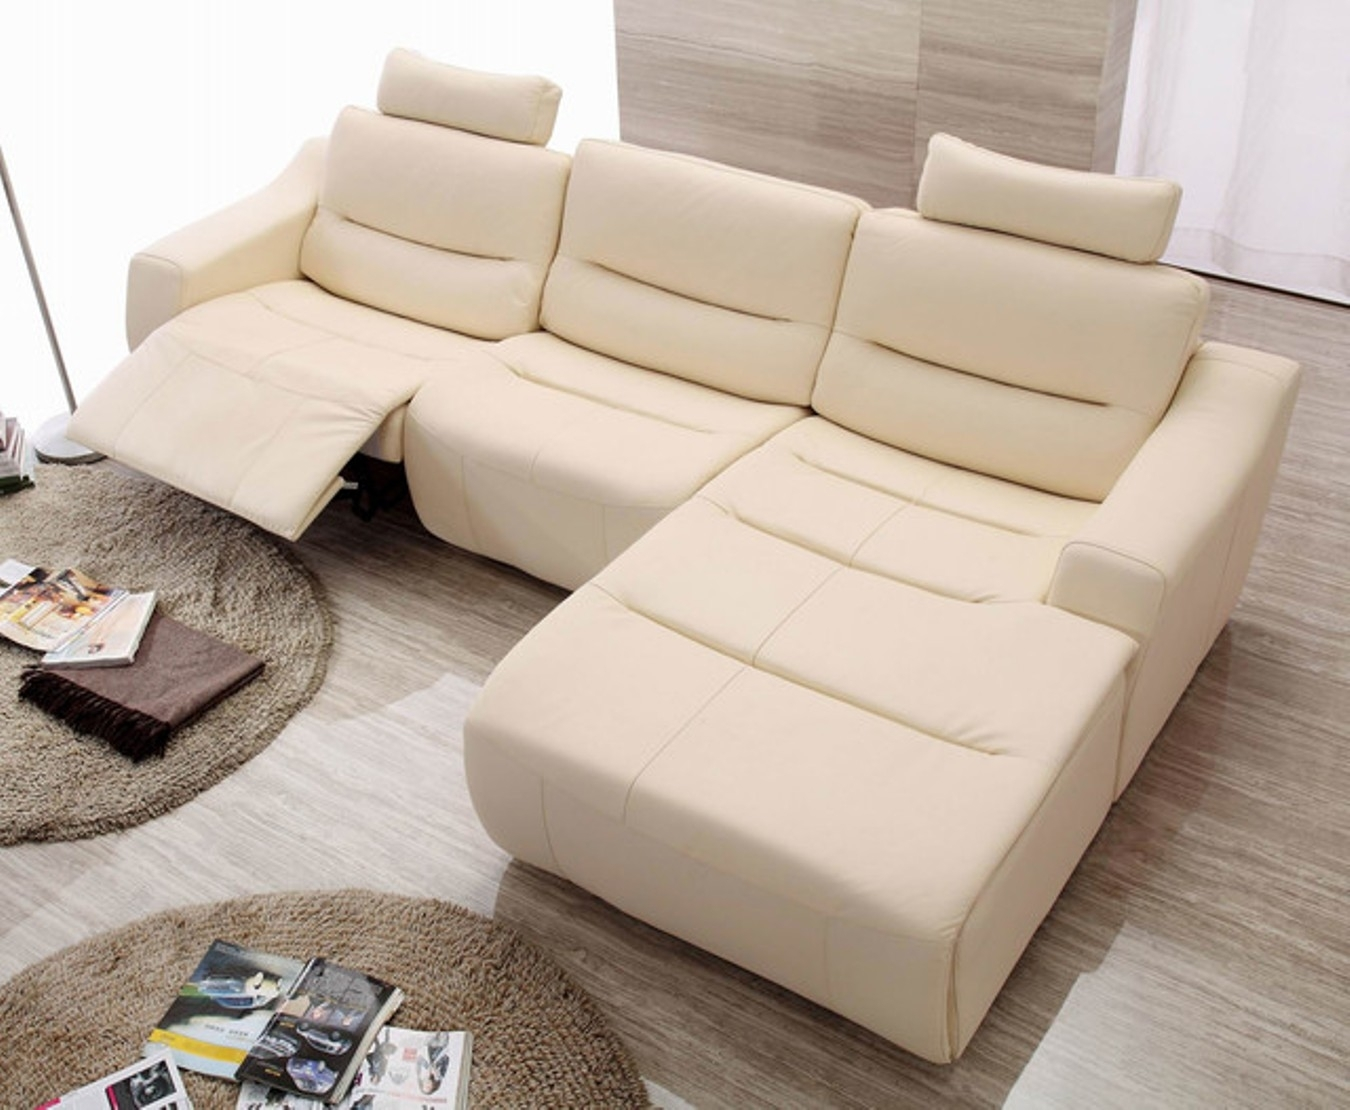 Lovely Sectional Sofas With Recliners For Small Spaces 58 In Throughout Sectional Sofas With Recliners For Small Spaces (View 6 of 10)